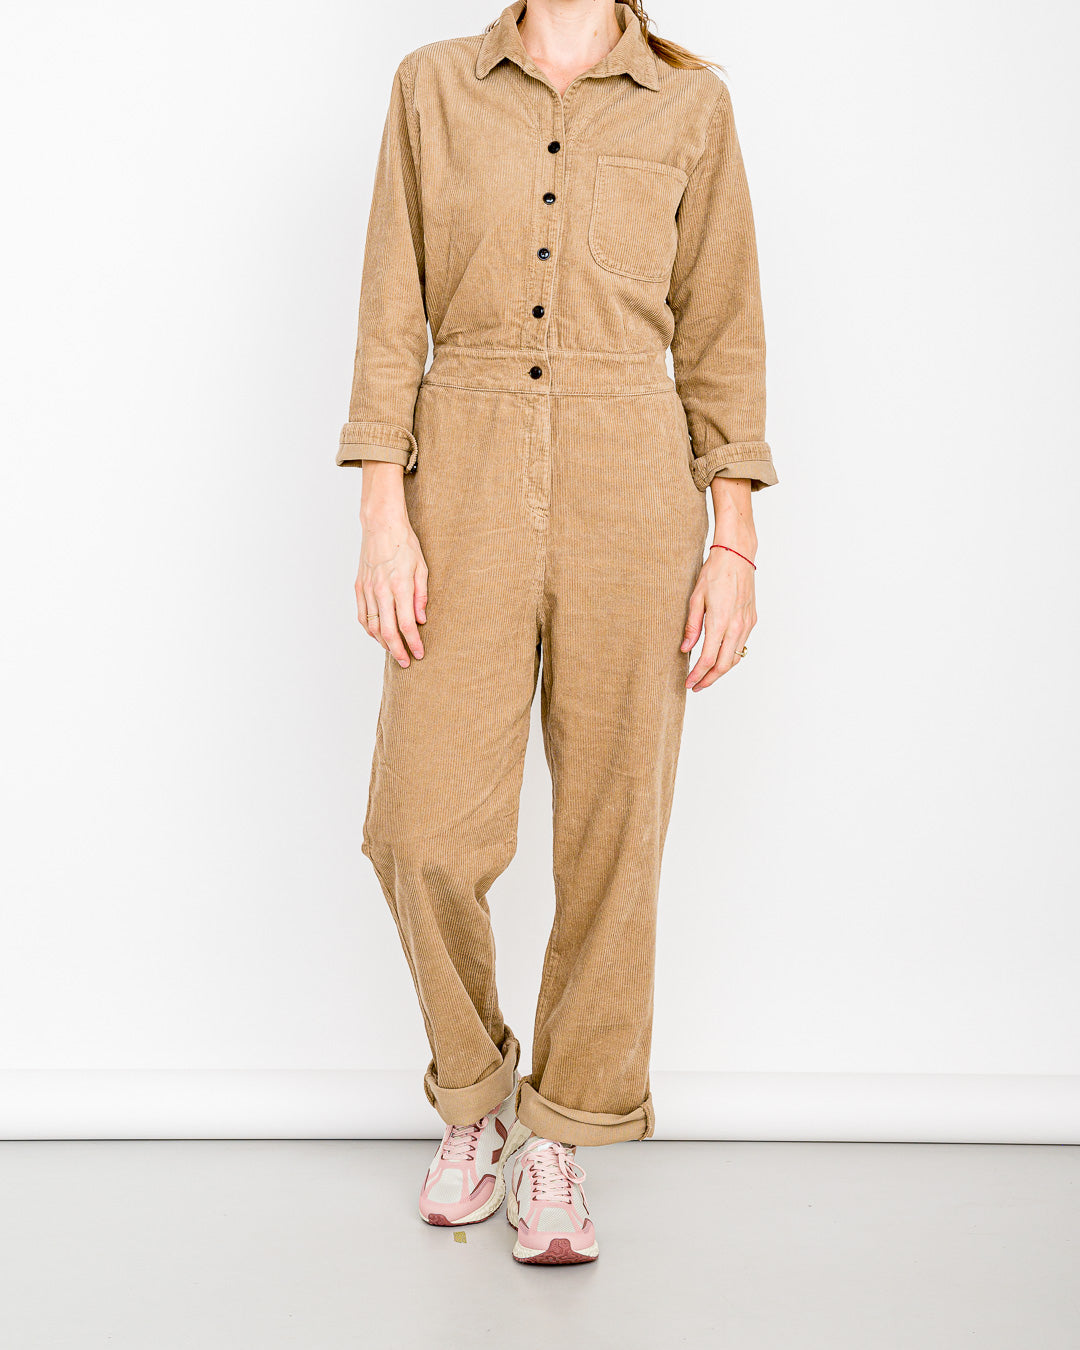 Bellerose // Jumpsuit Litski Clay